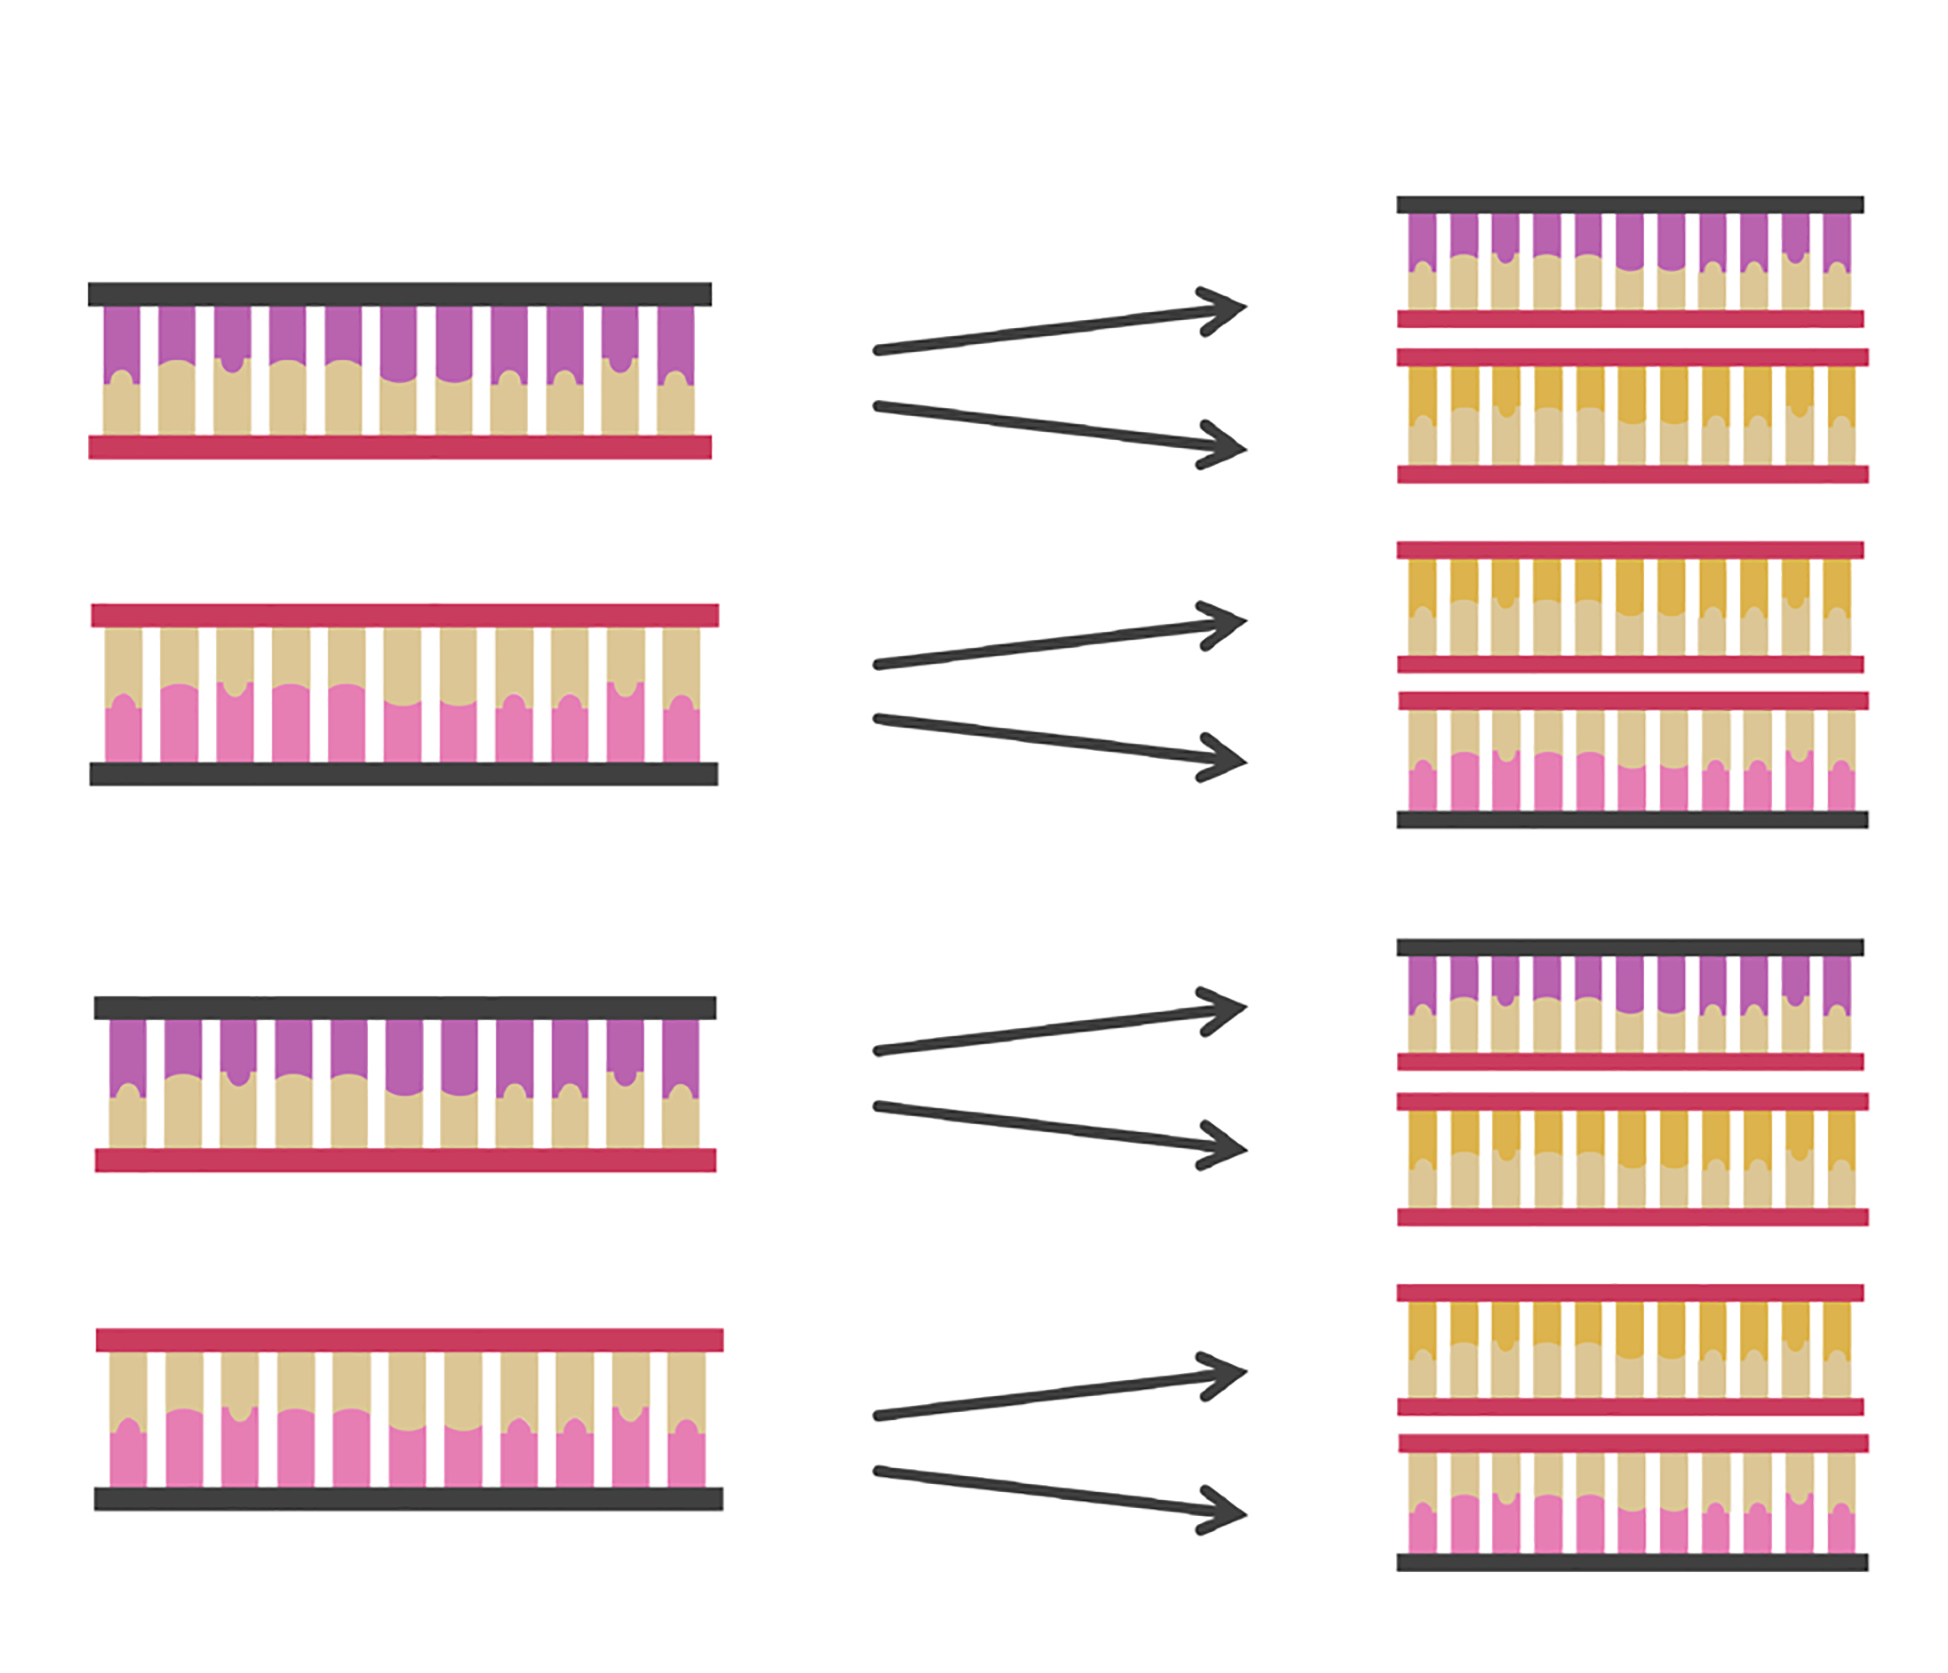 Figure 6. After each time the three steps of polymerase chain reaction (PCR)—denaturation, annealing and elongation¬—are performed, the amount of DNA in a sample doubles.